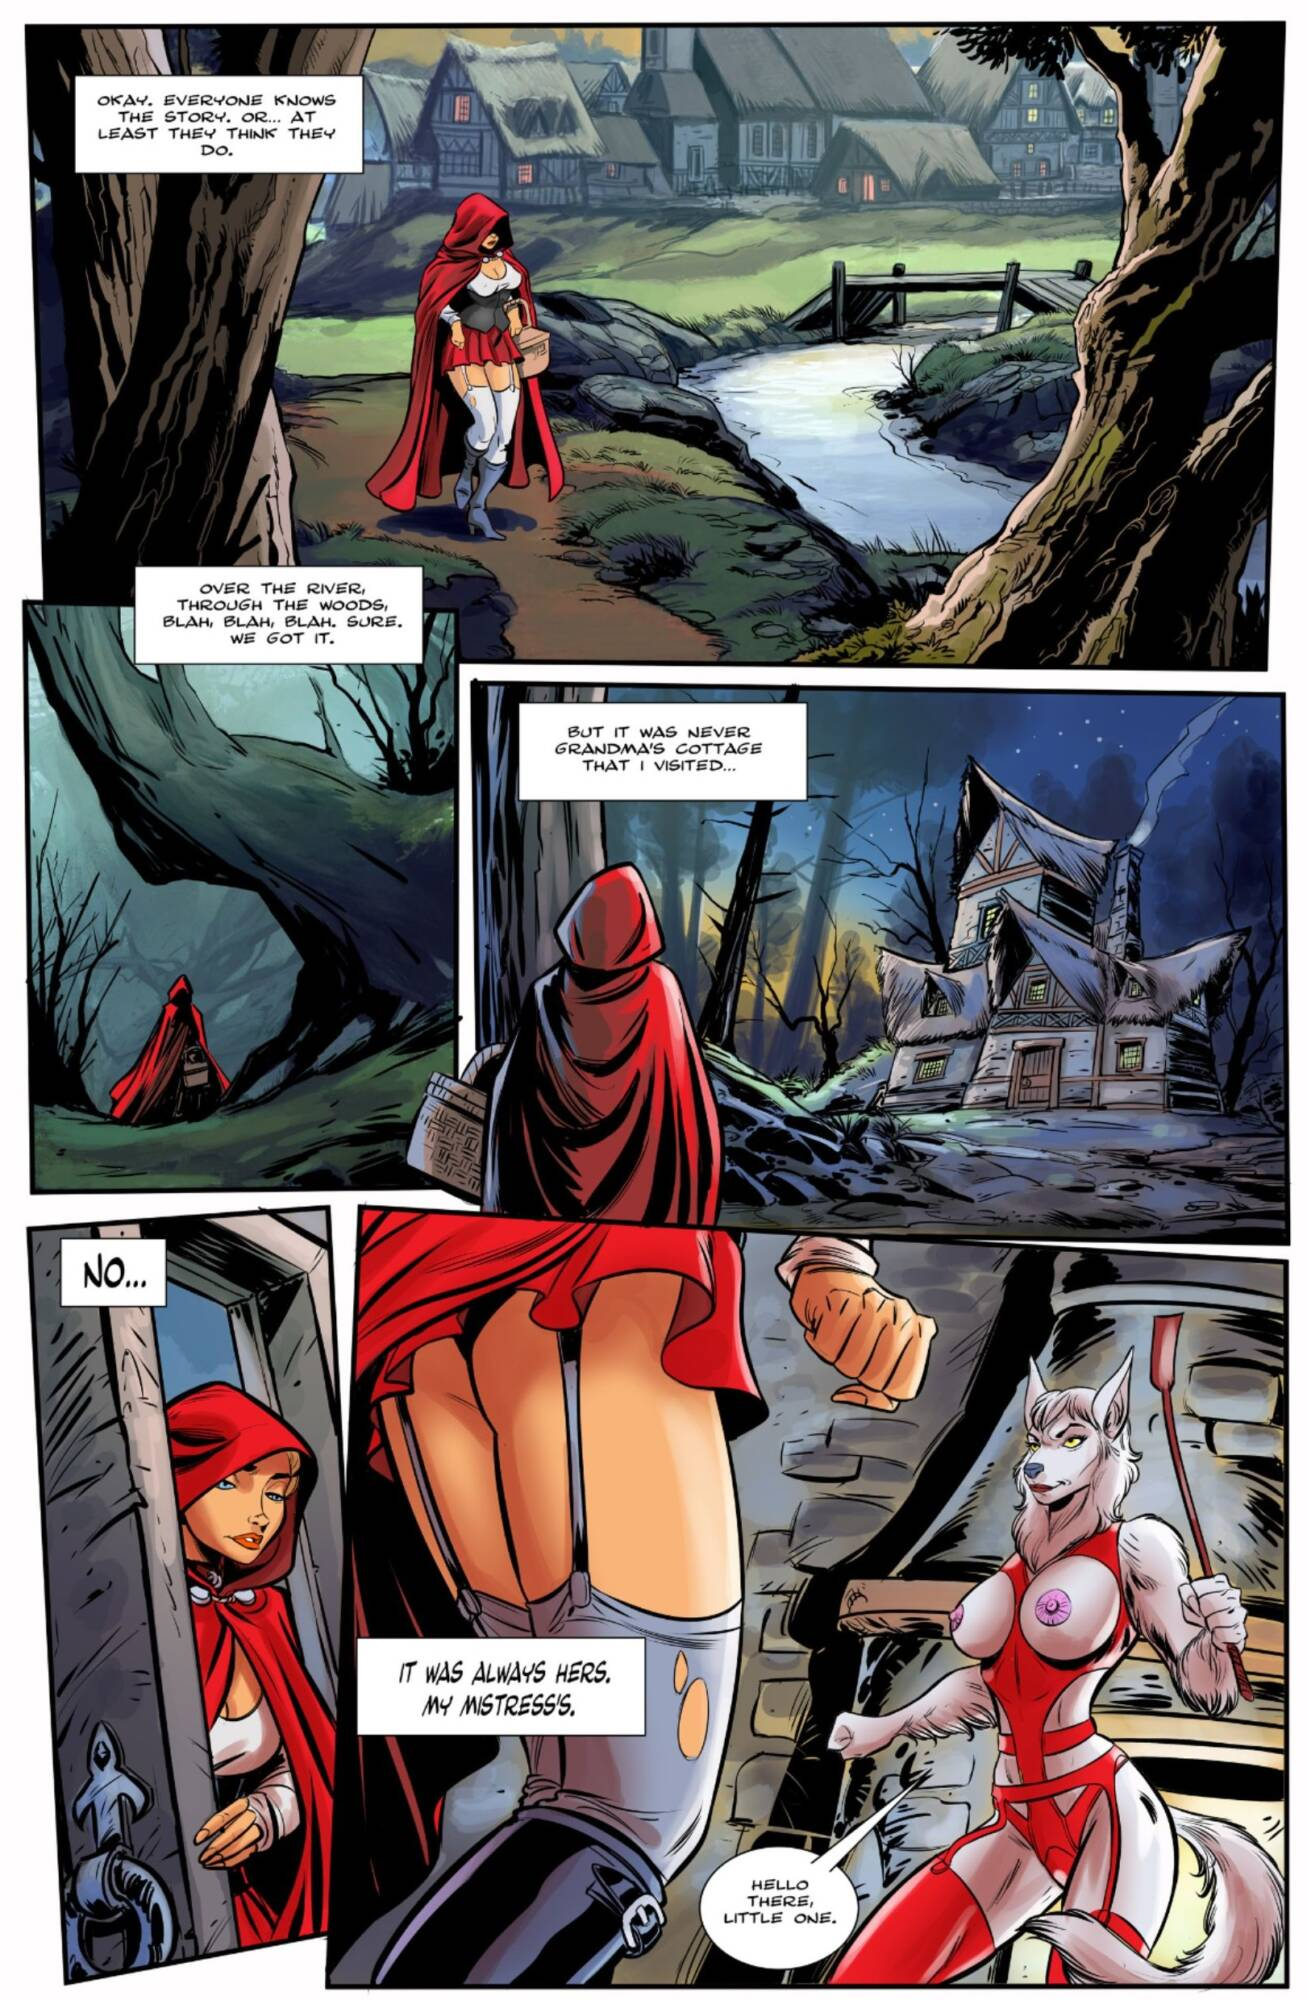 Red Riding Hood (English) - page01 Crossover,Frozen,Little Red Riding Hood,Moana,  xxx porn rule34